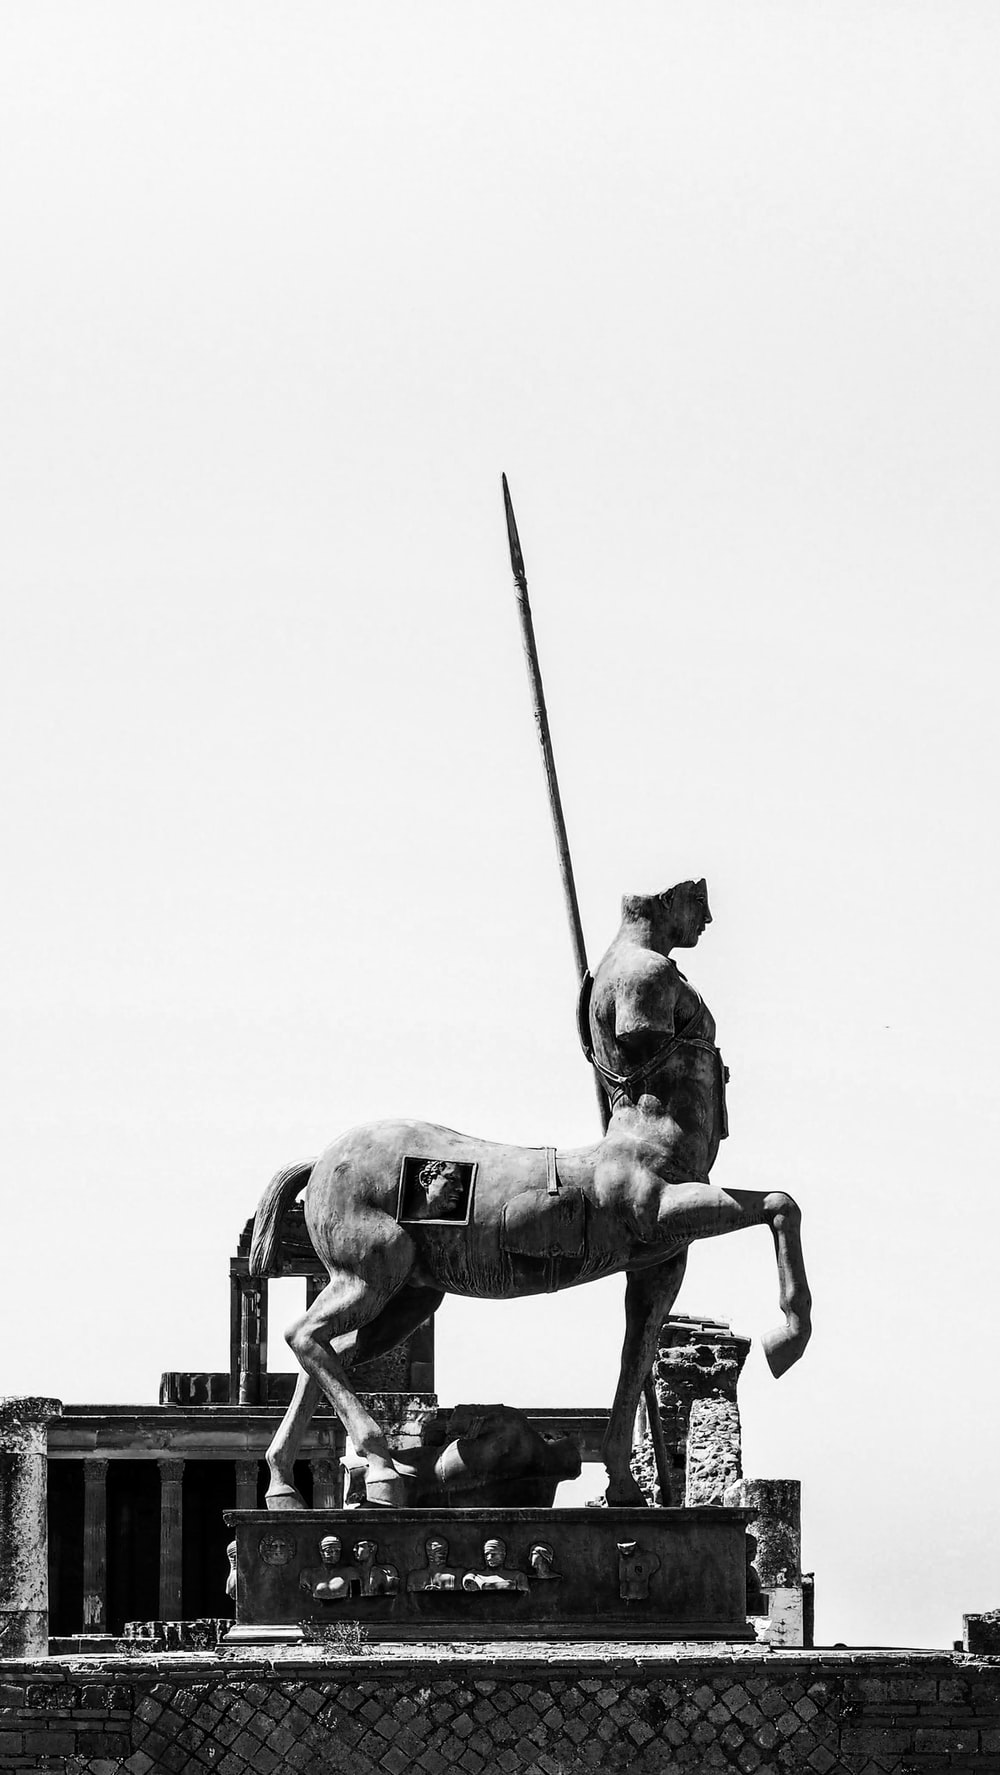 man riding on horse statue